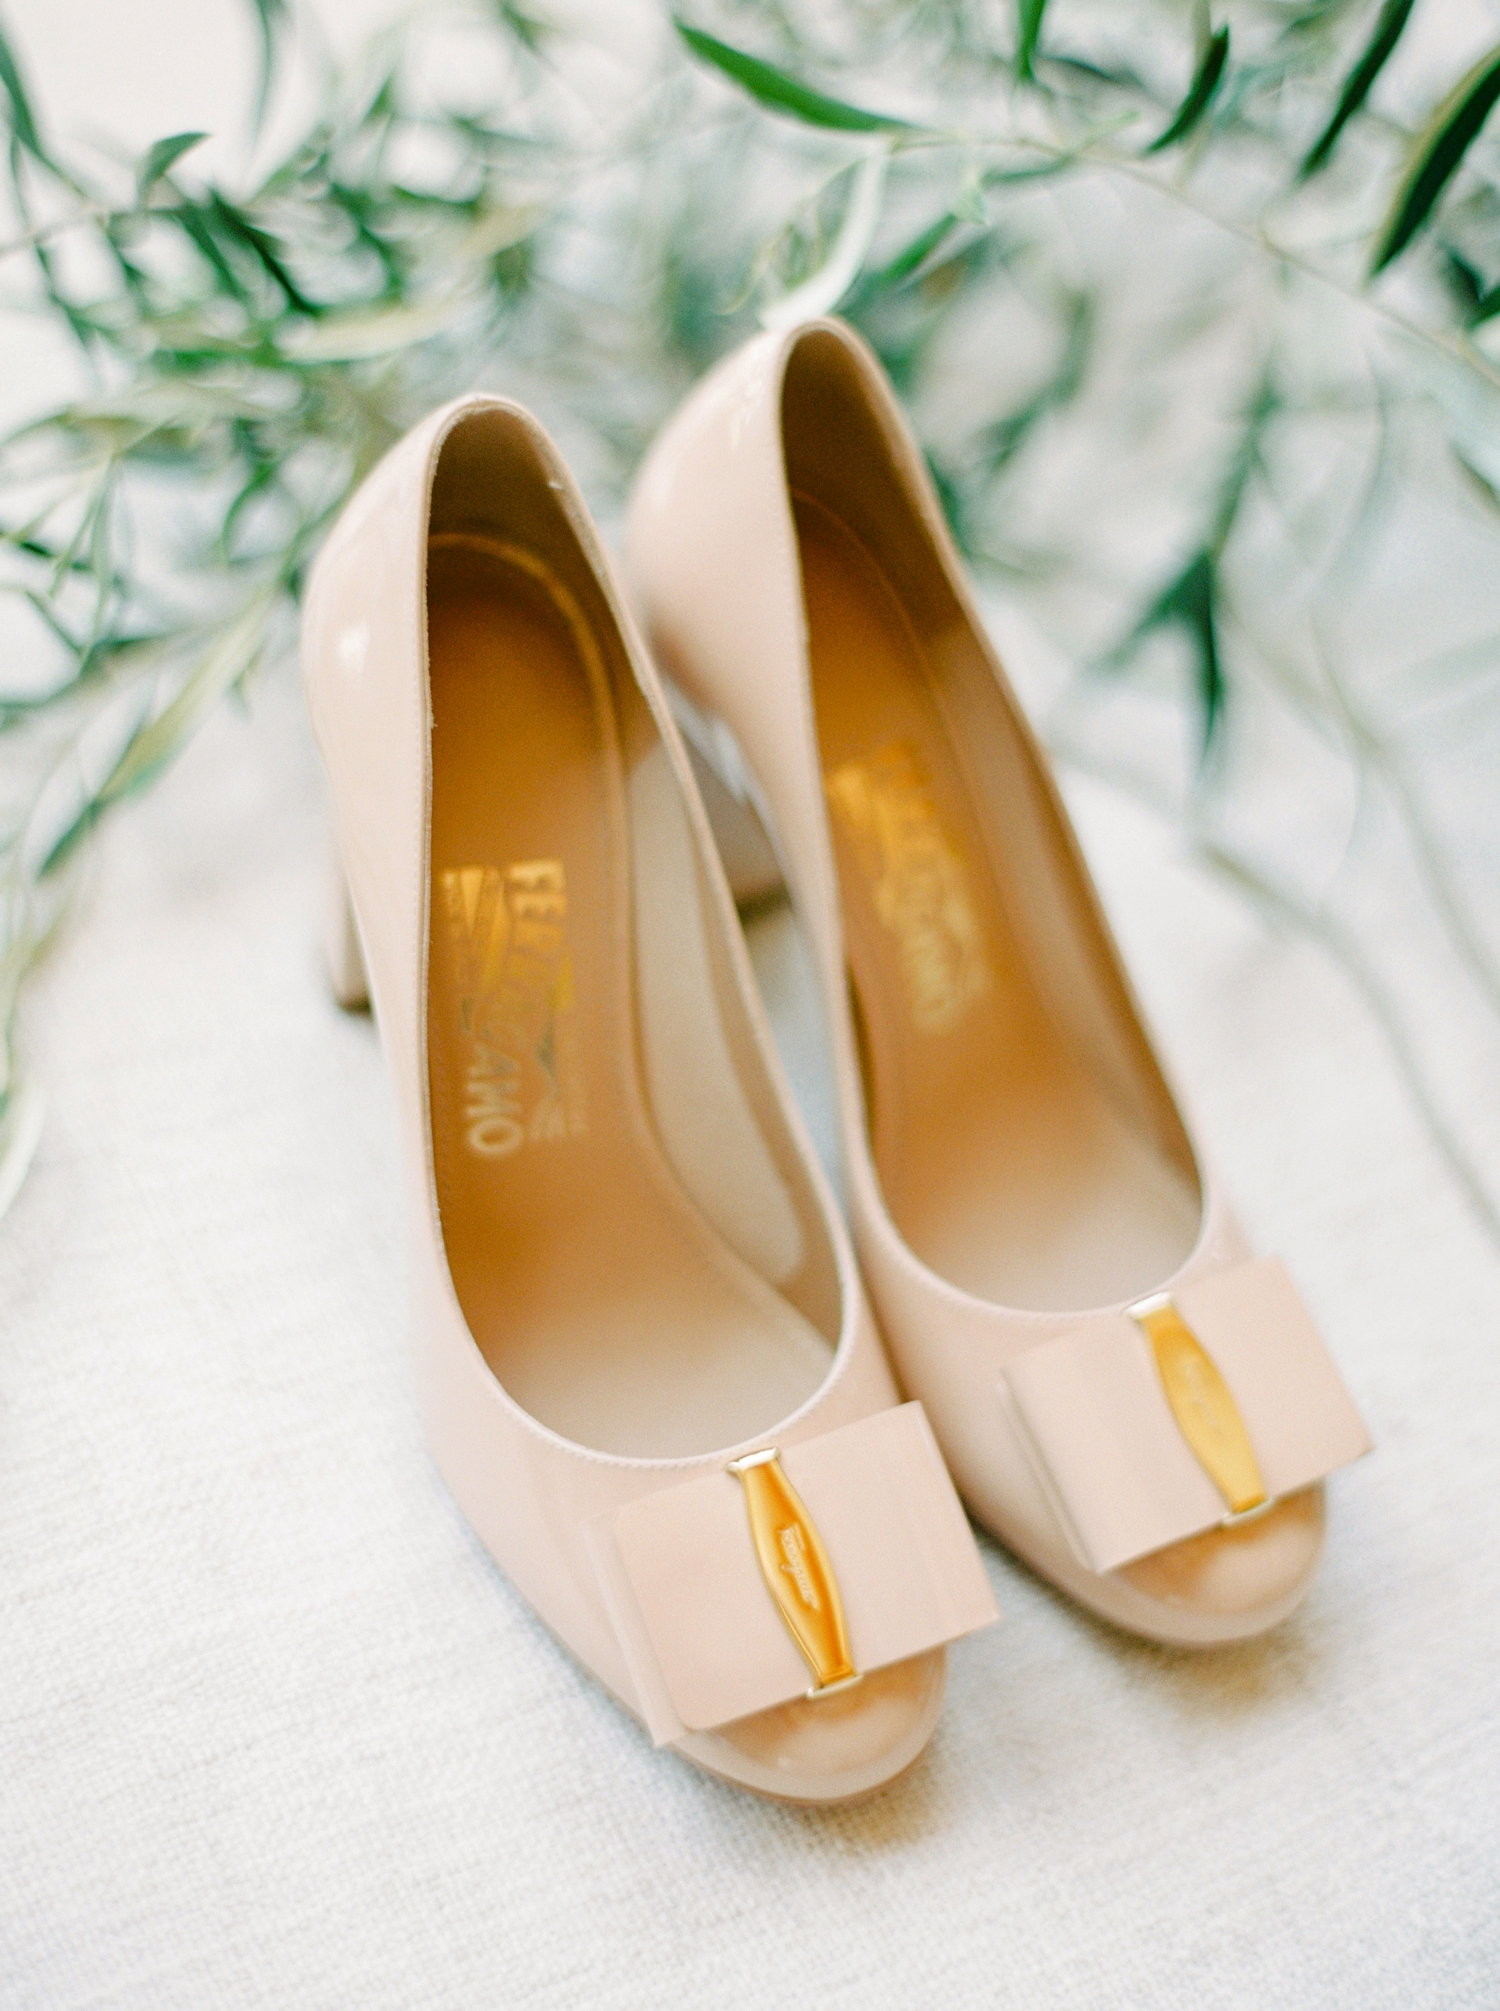 Sunstone Winery and Villa | California Wedding Photographers | Santa Barbara Wedding Photography | Santa Ynez Wedding | Justine Milton Photographer | Fine Art Film | Salvatore Feragamo Wedding Shoes